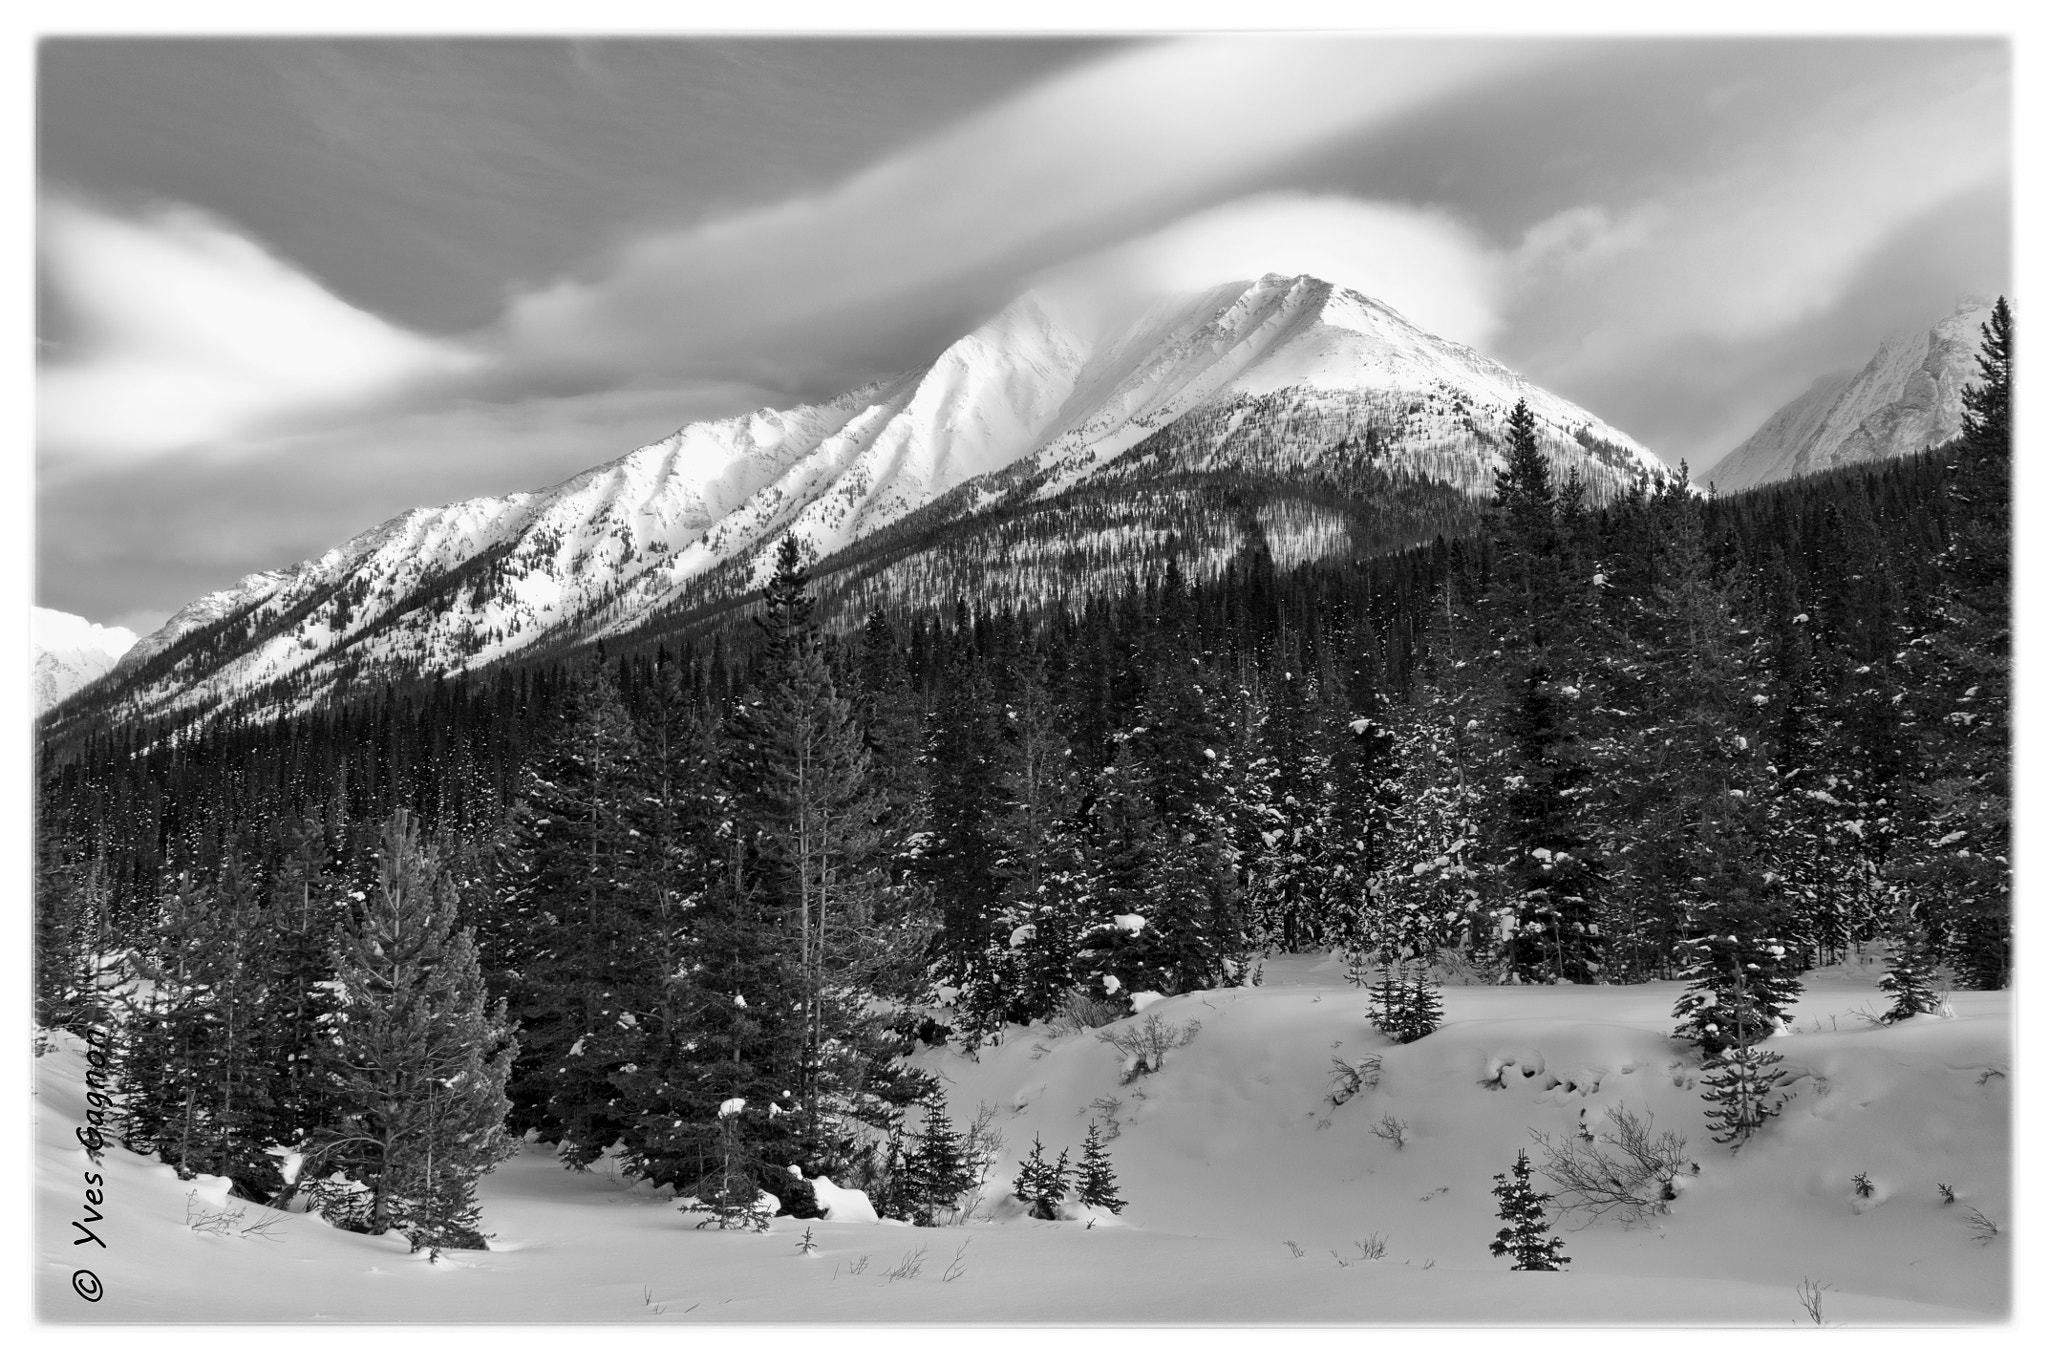 Photograph Clouds and Clouds by Yves Gagnon on 500px